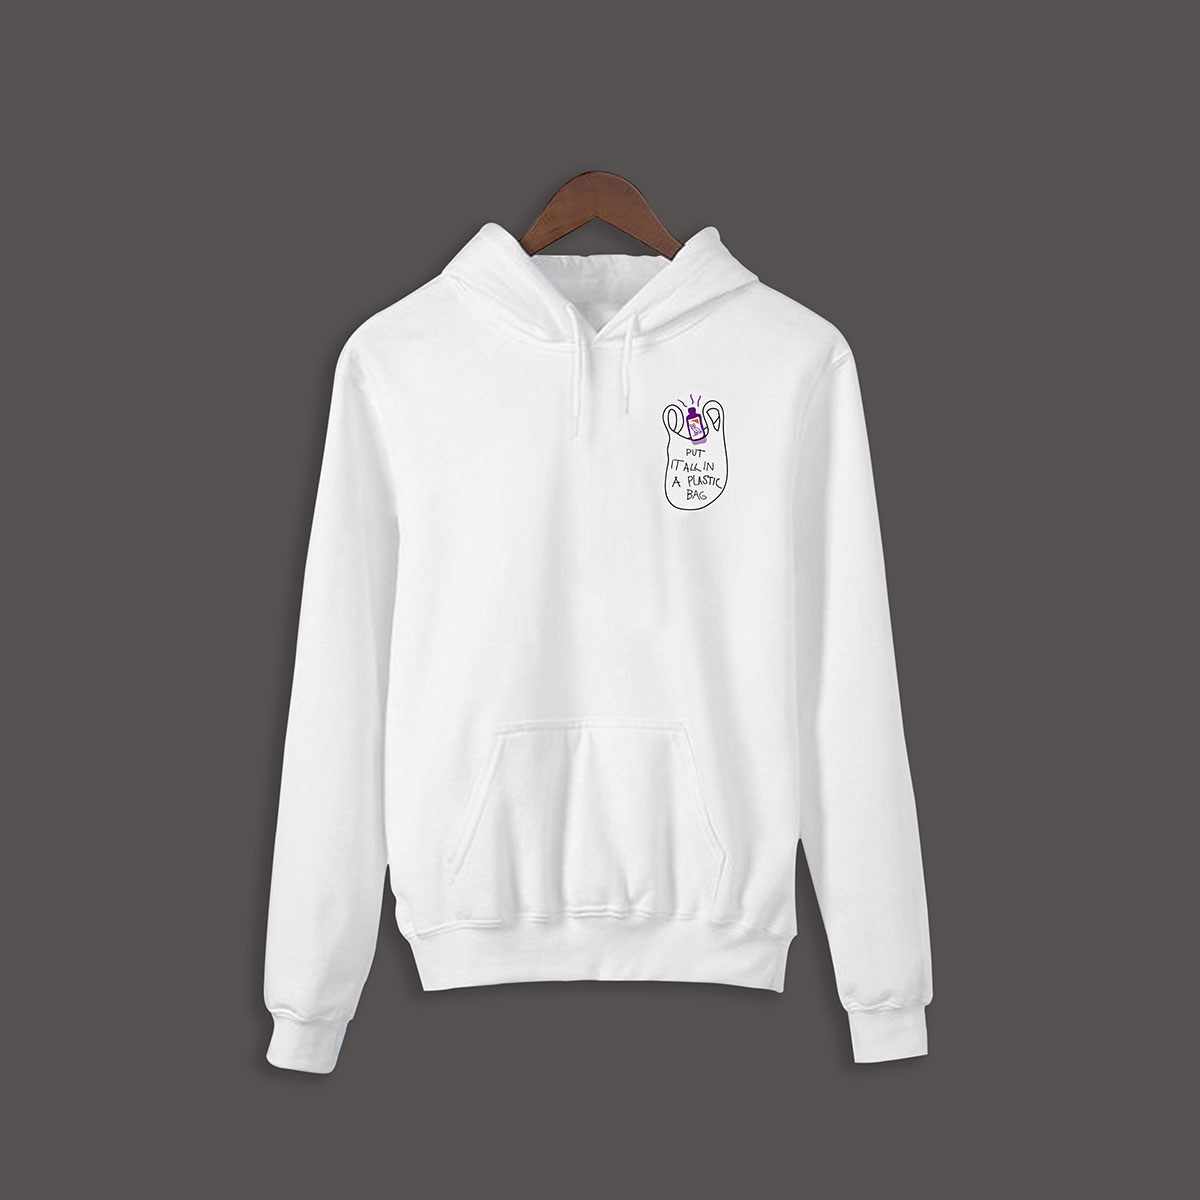 Put it all in a plastic bag Hoodie - White